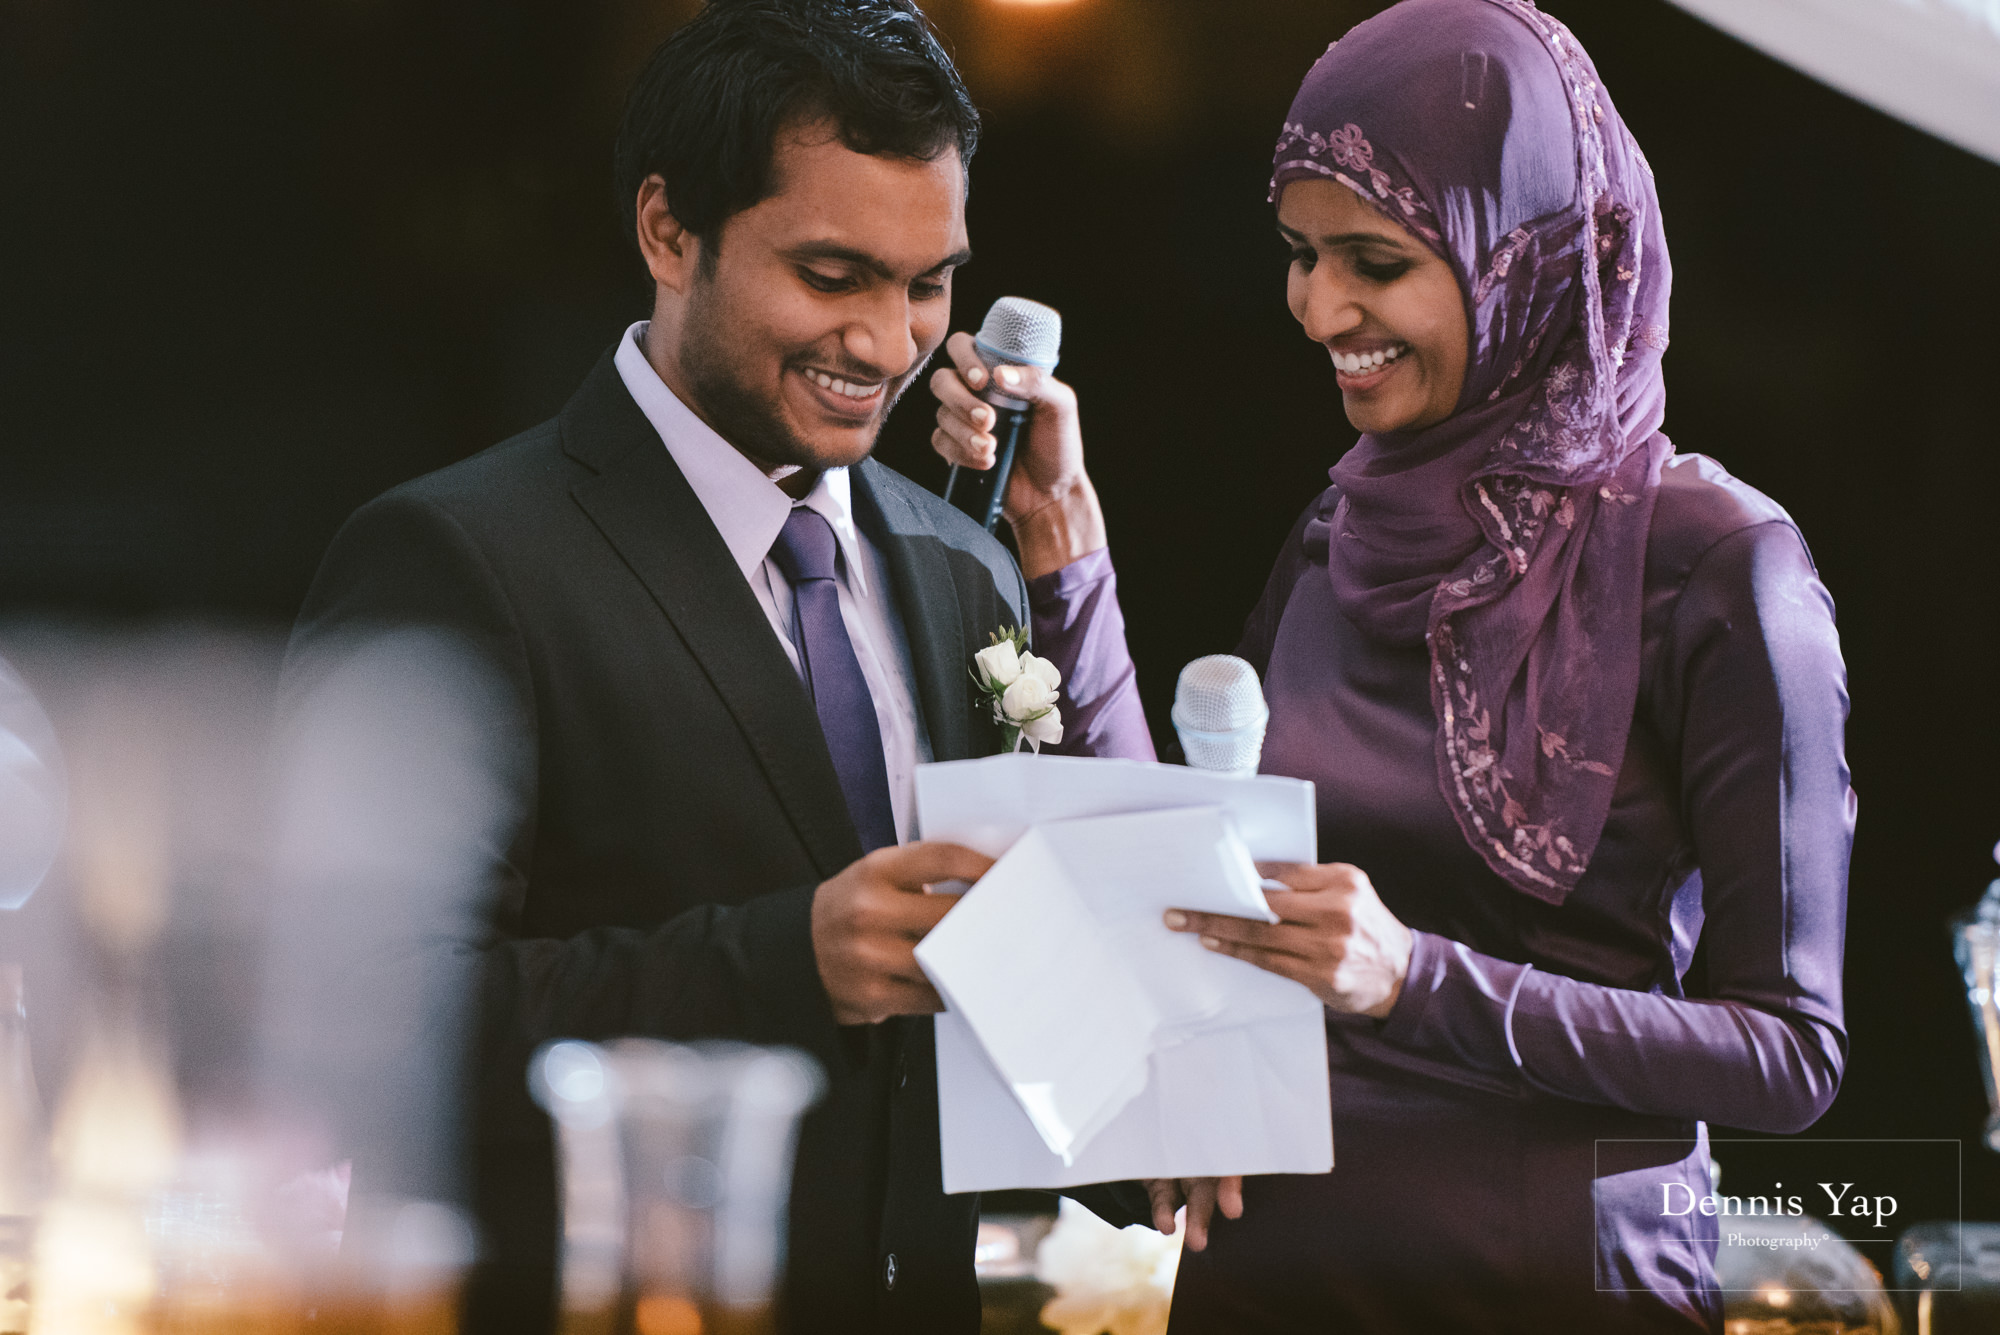 javed zenysha muslim wedding ceremony seri carcosa negara dennis yap photography maldives couple-37.jpg